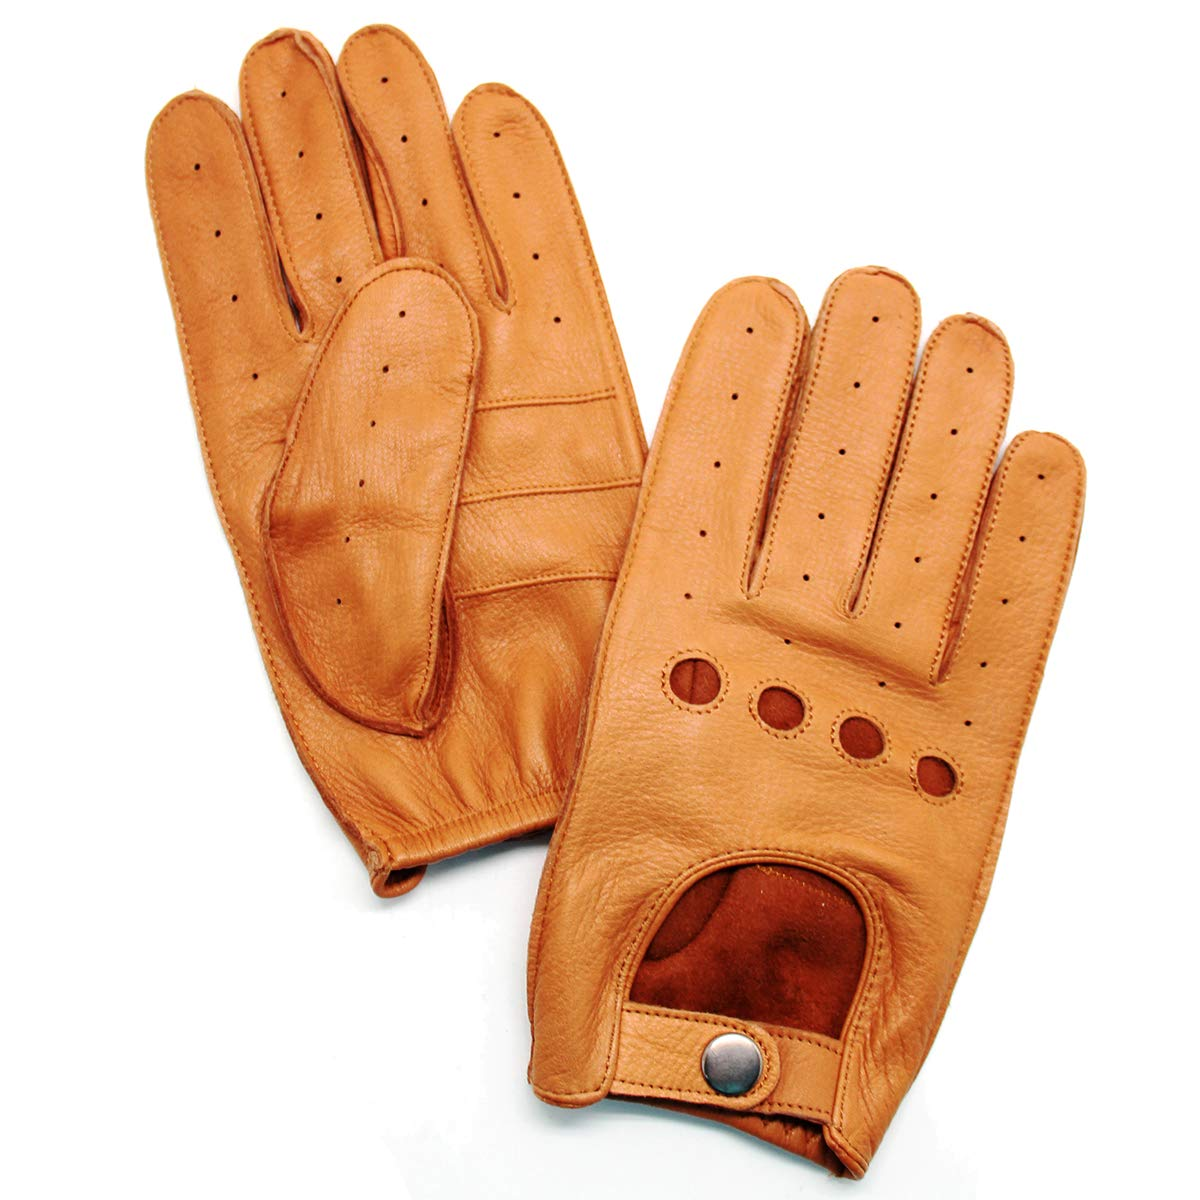 a1de05772 YISEVEN Men's Deerskin Leather Driving Gloves Unlined at Amazon Men's  Clothing store: